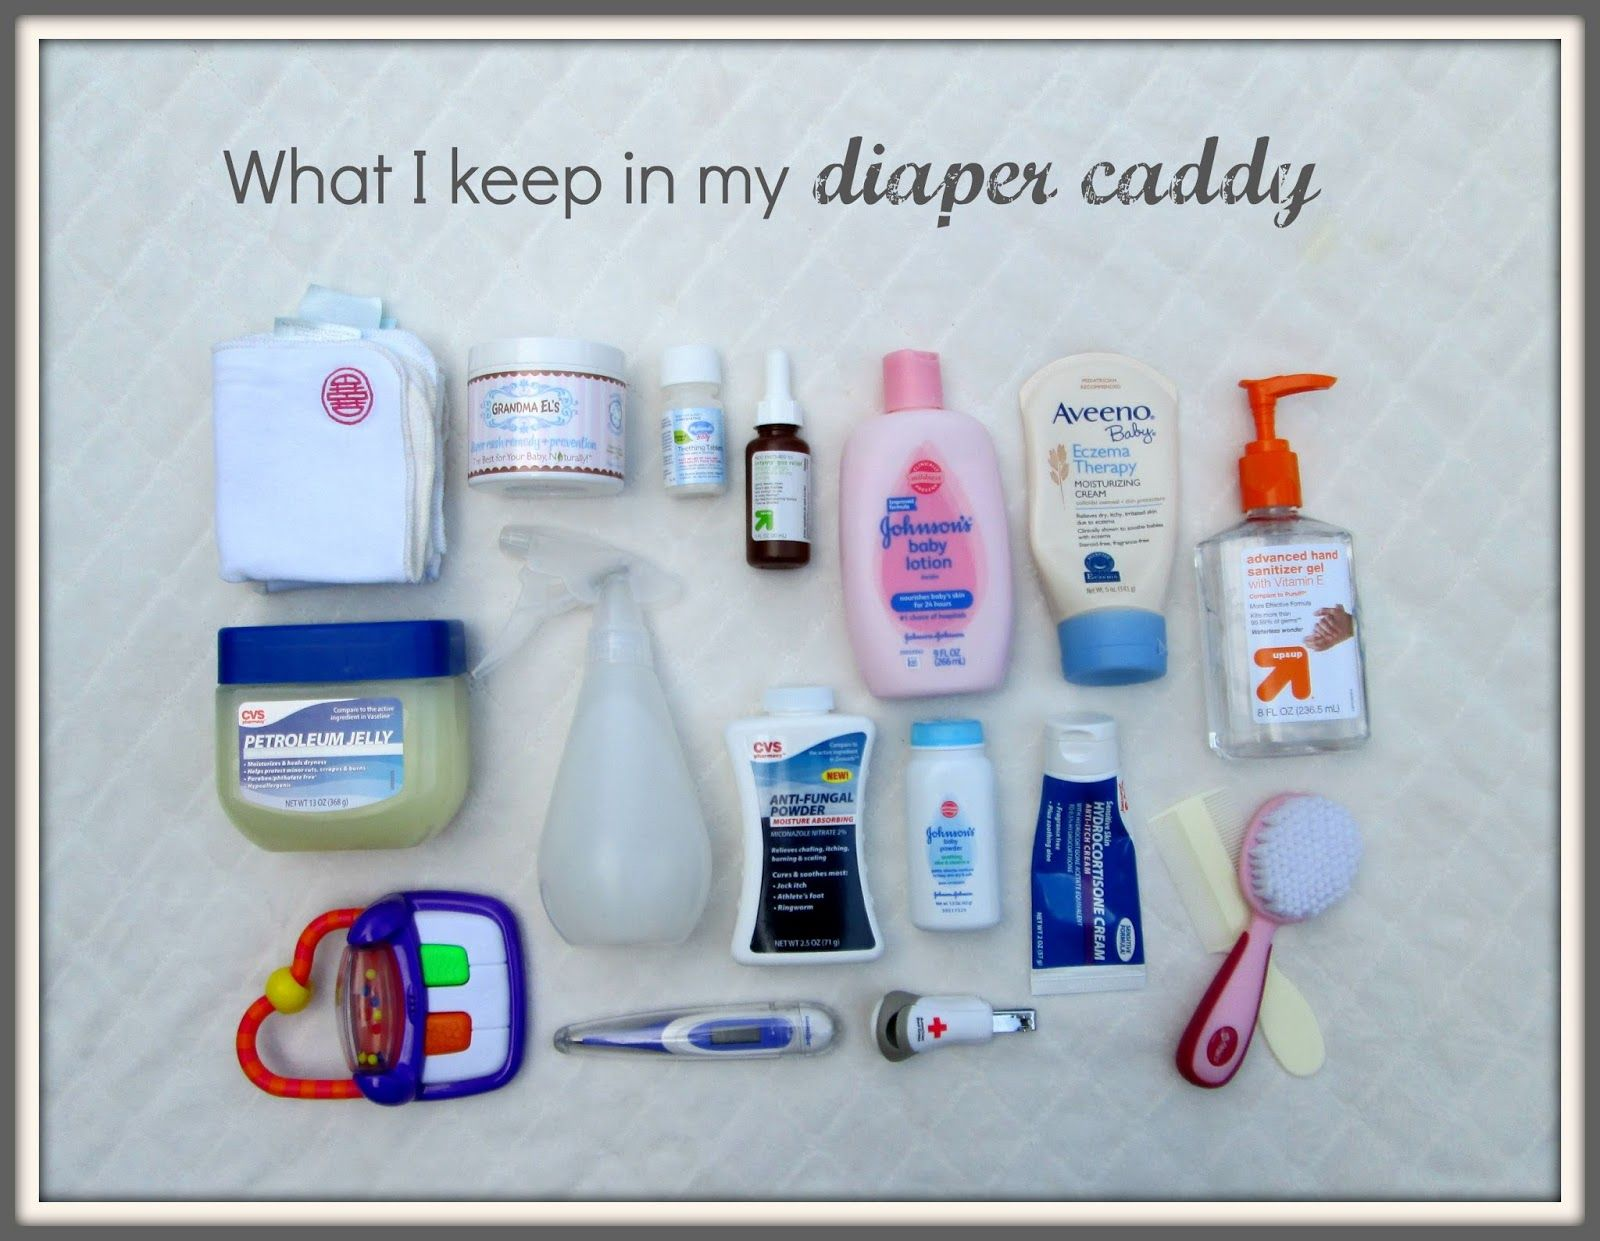 What I Keep in my Organized Diaper Caddy | Pinterest | Diaper caddy ...